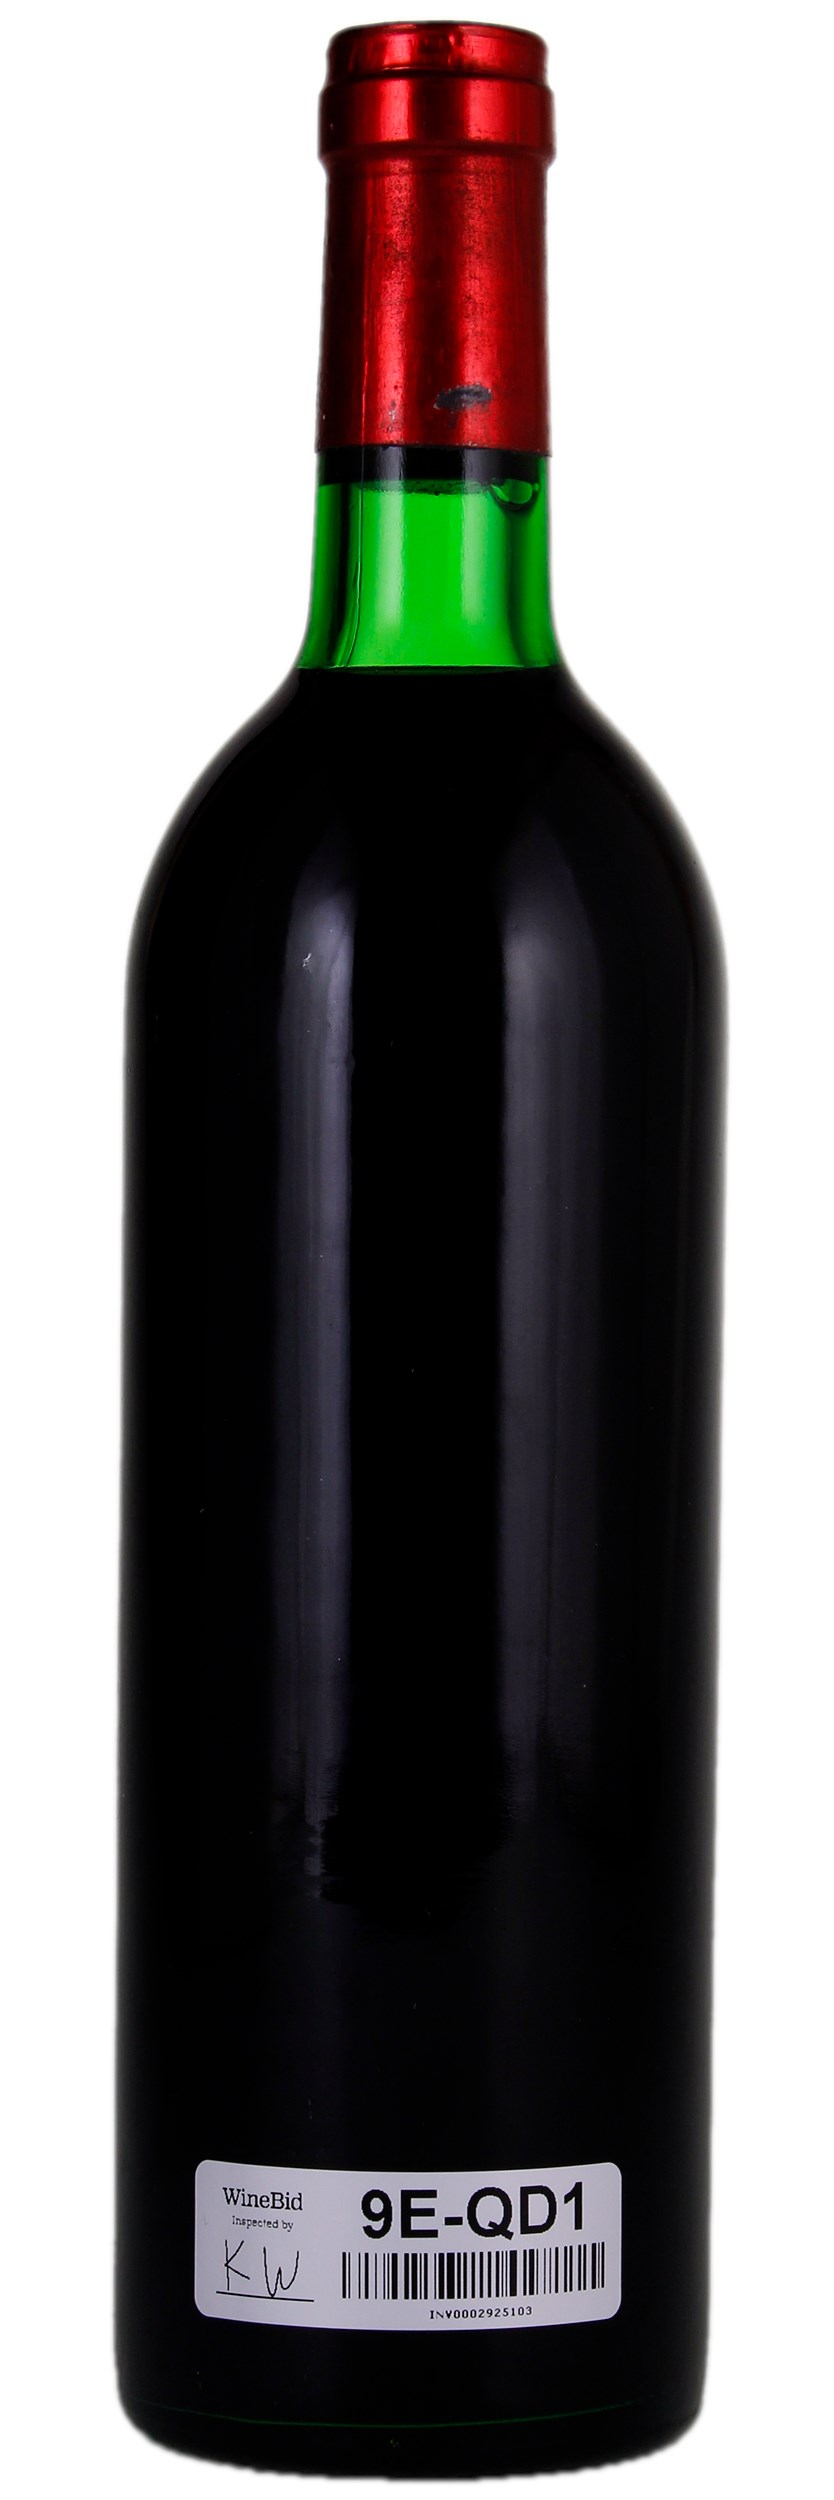 Petrus 1976 Red Wine From France Winebid